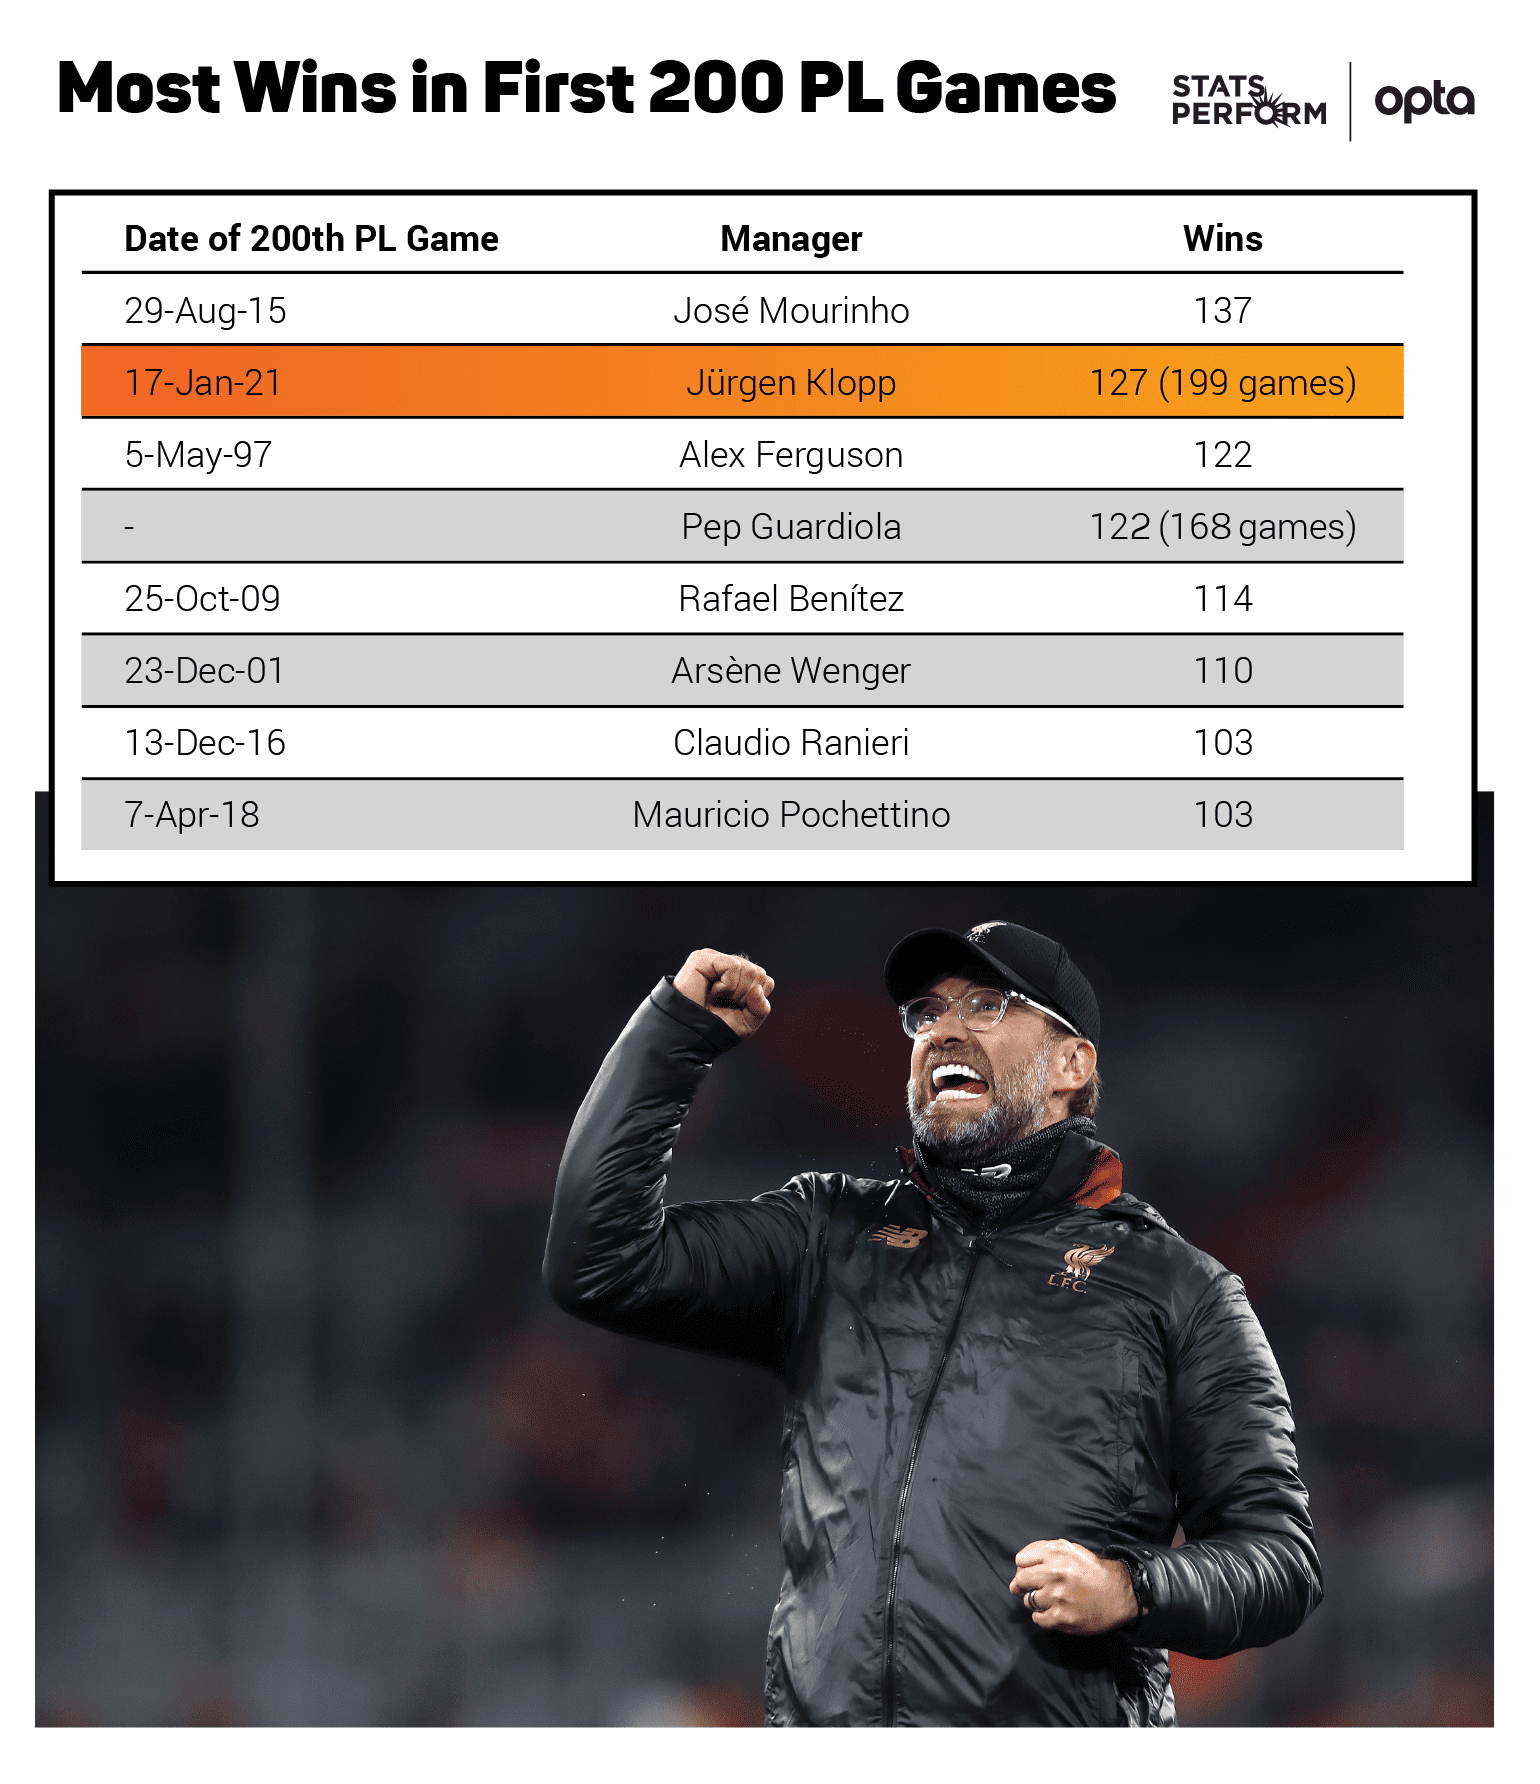 Most wins in 200 games